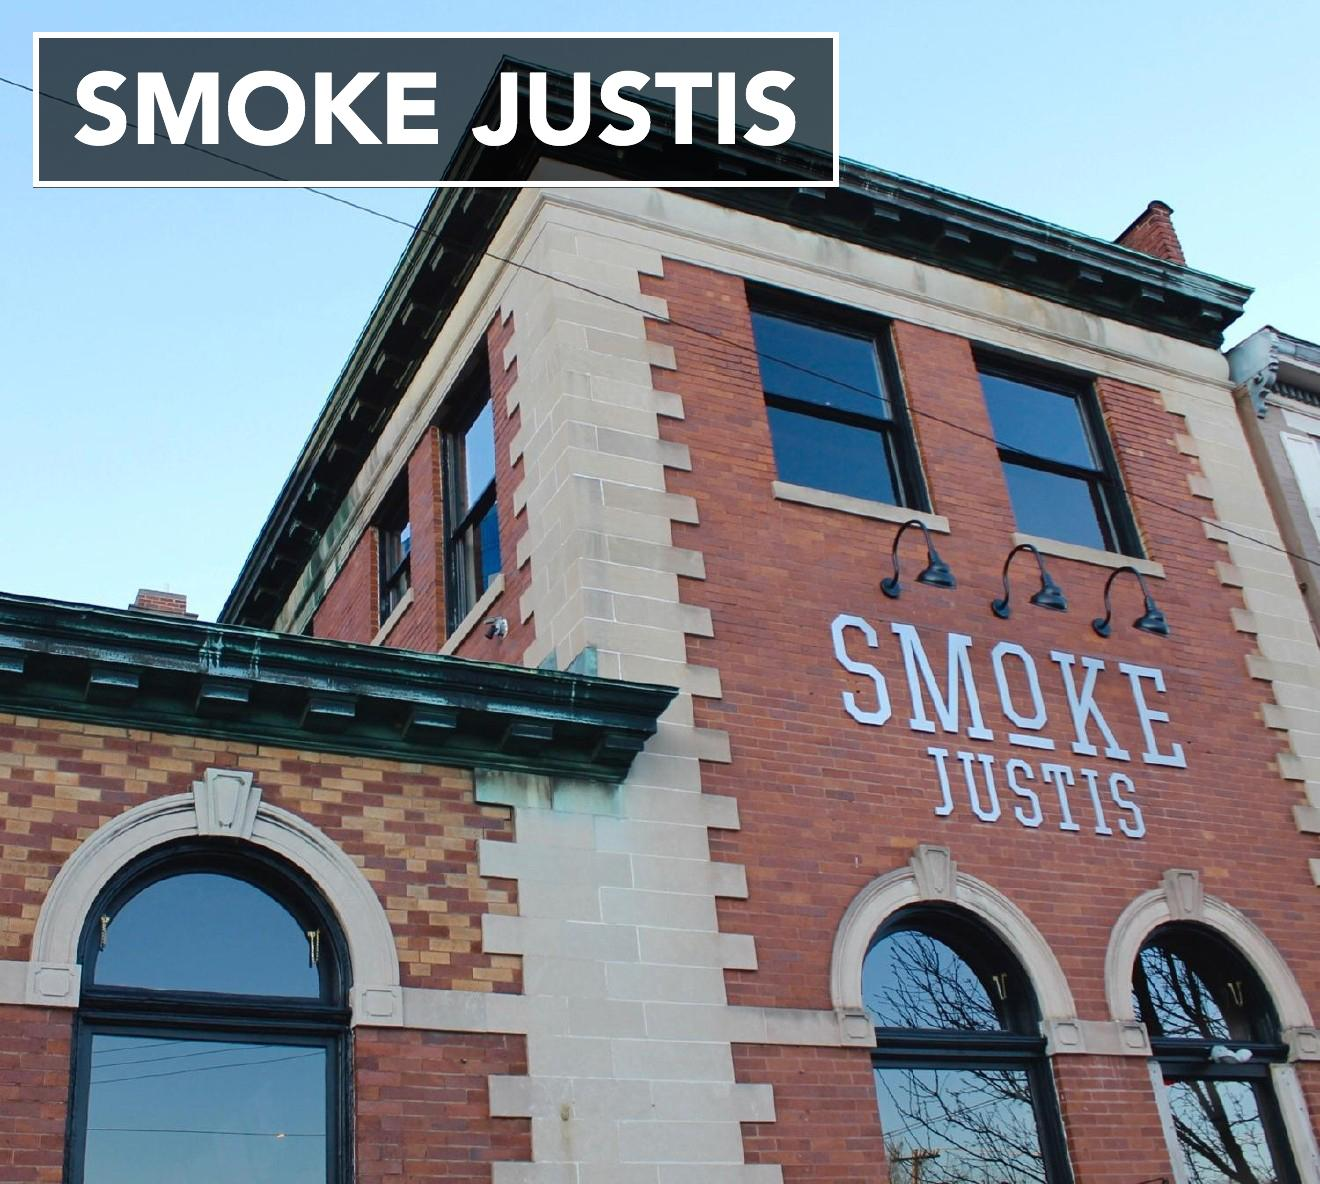 Smoke Justis is located at 302 Court St., Covington, KY 41011 / Image: Rose Brewington // Published: 1.29.17